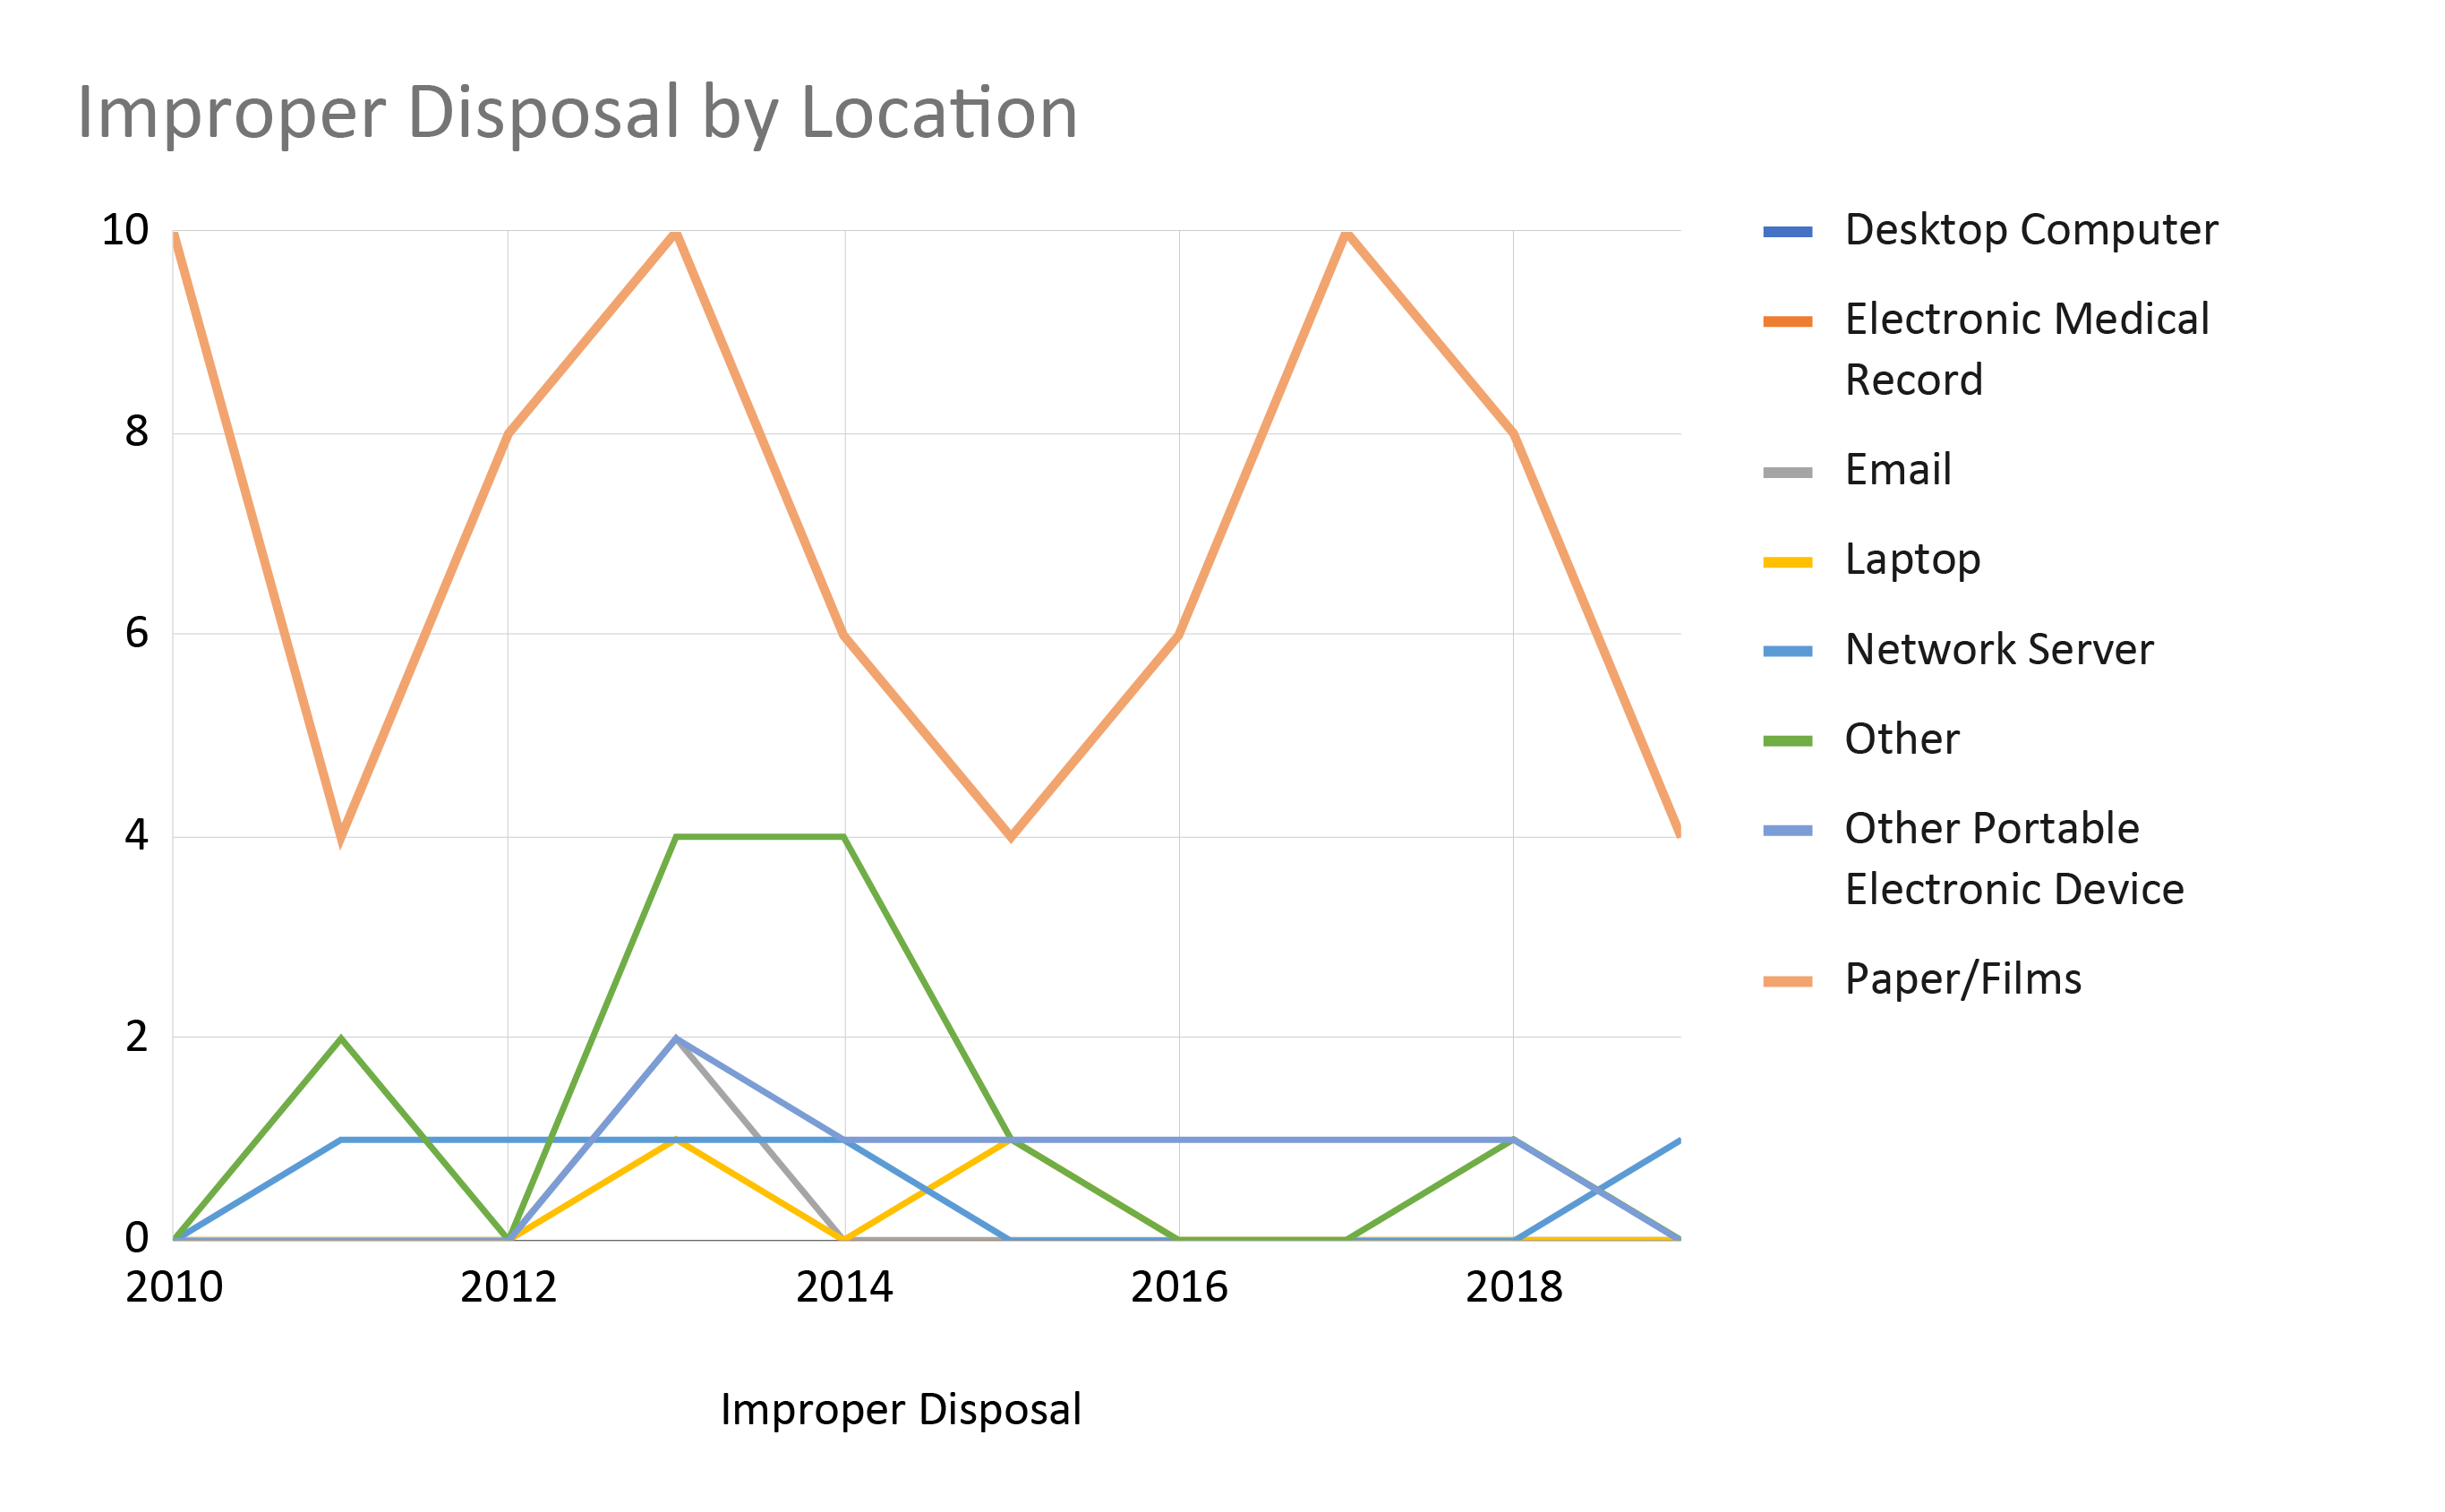 Improper Disposal by Media Over Time